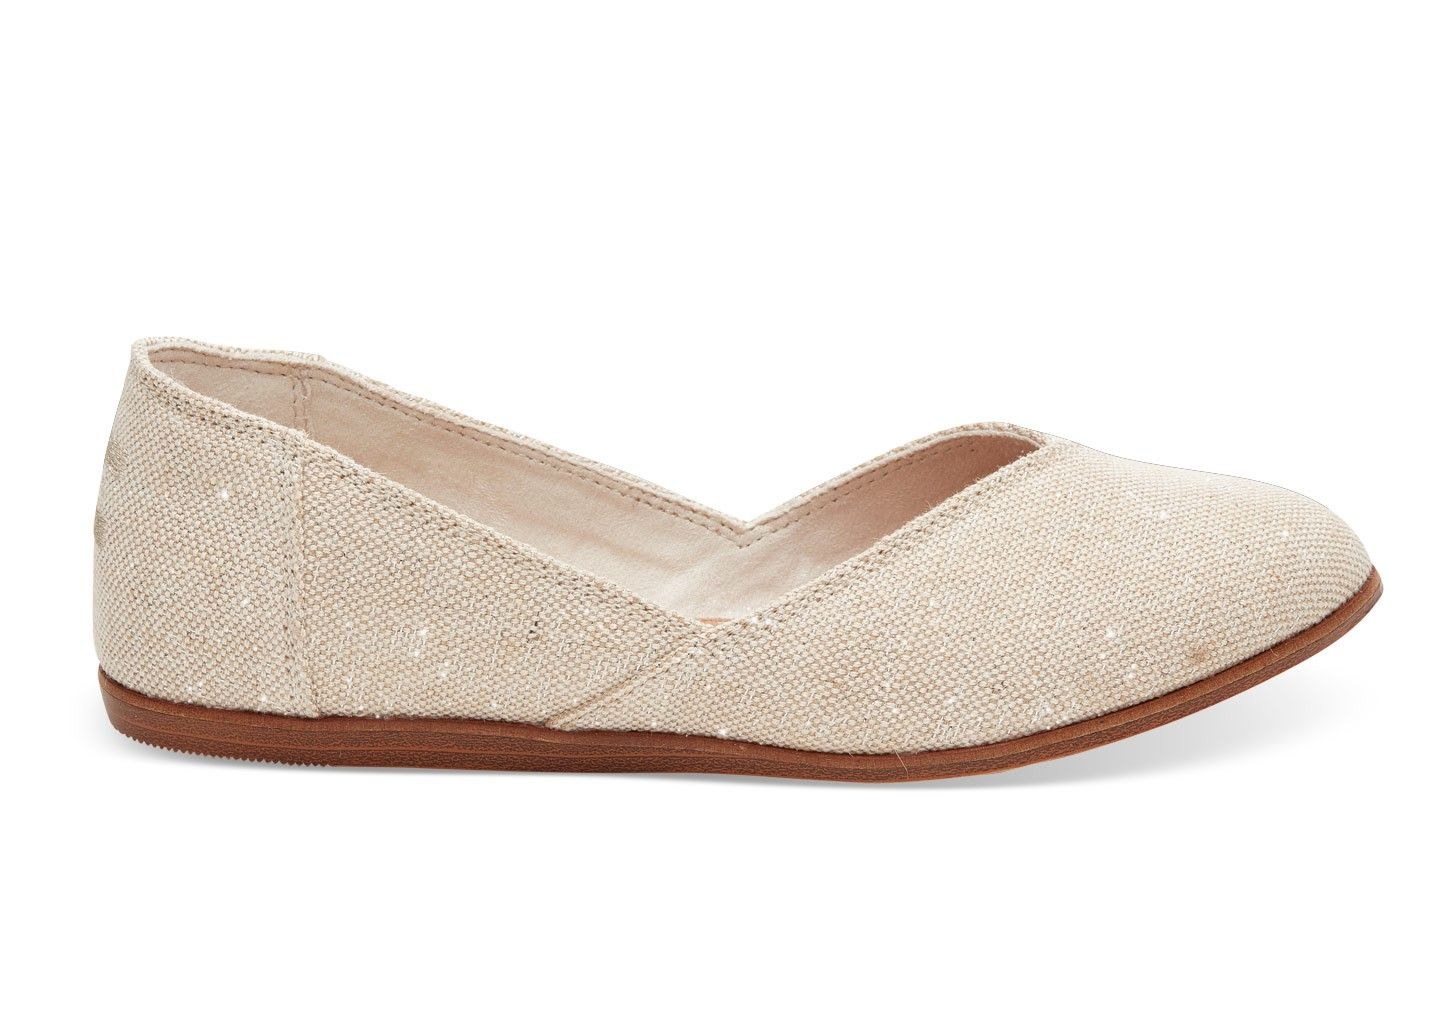 f508066ad83 TOMS TOMS Natural Metallic Burlap Women s Jutti Flats Shoes.  toms  shoes   all